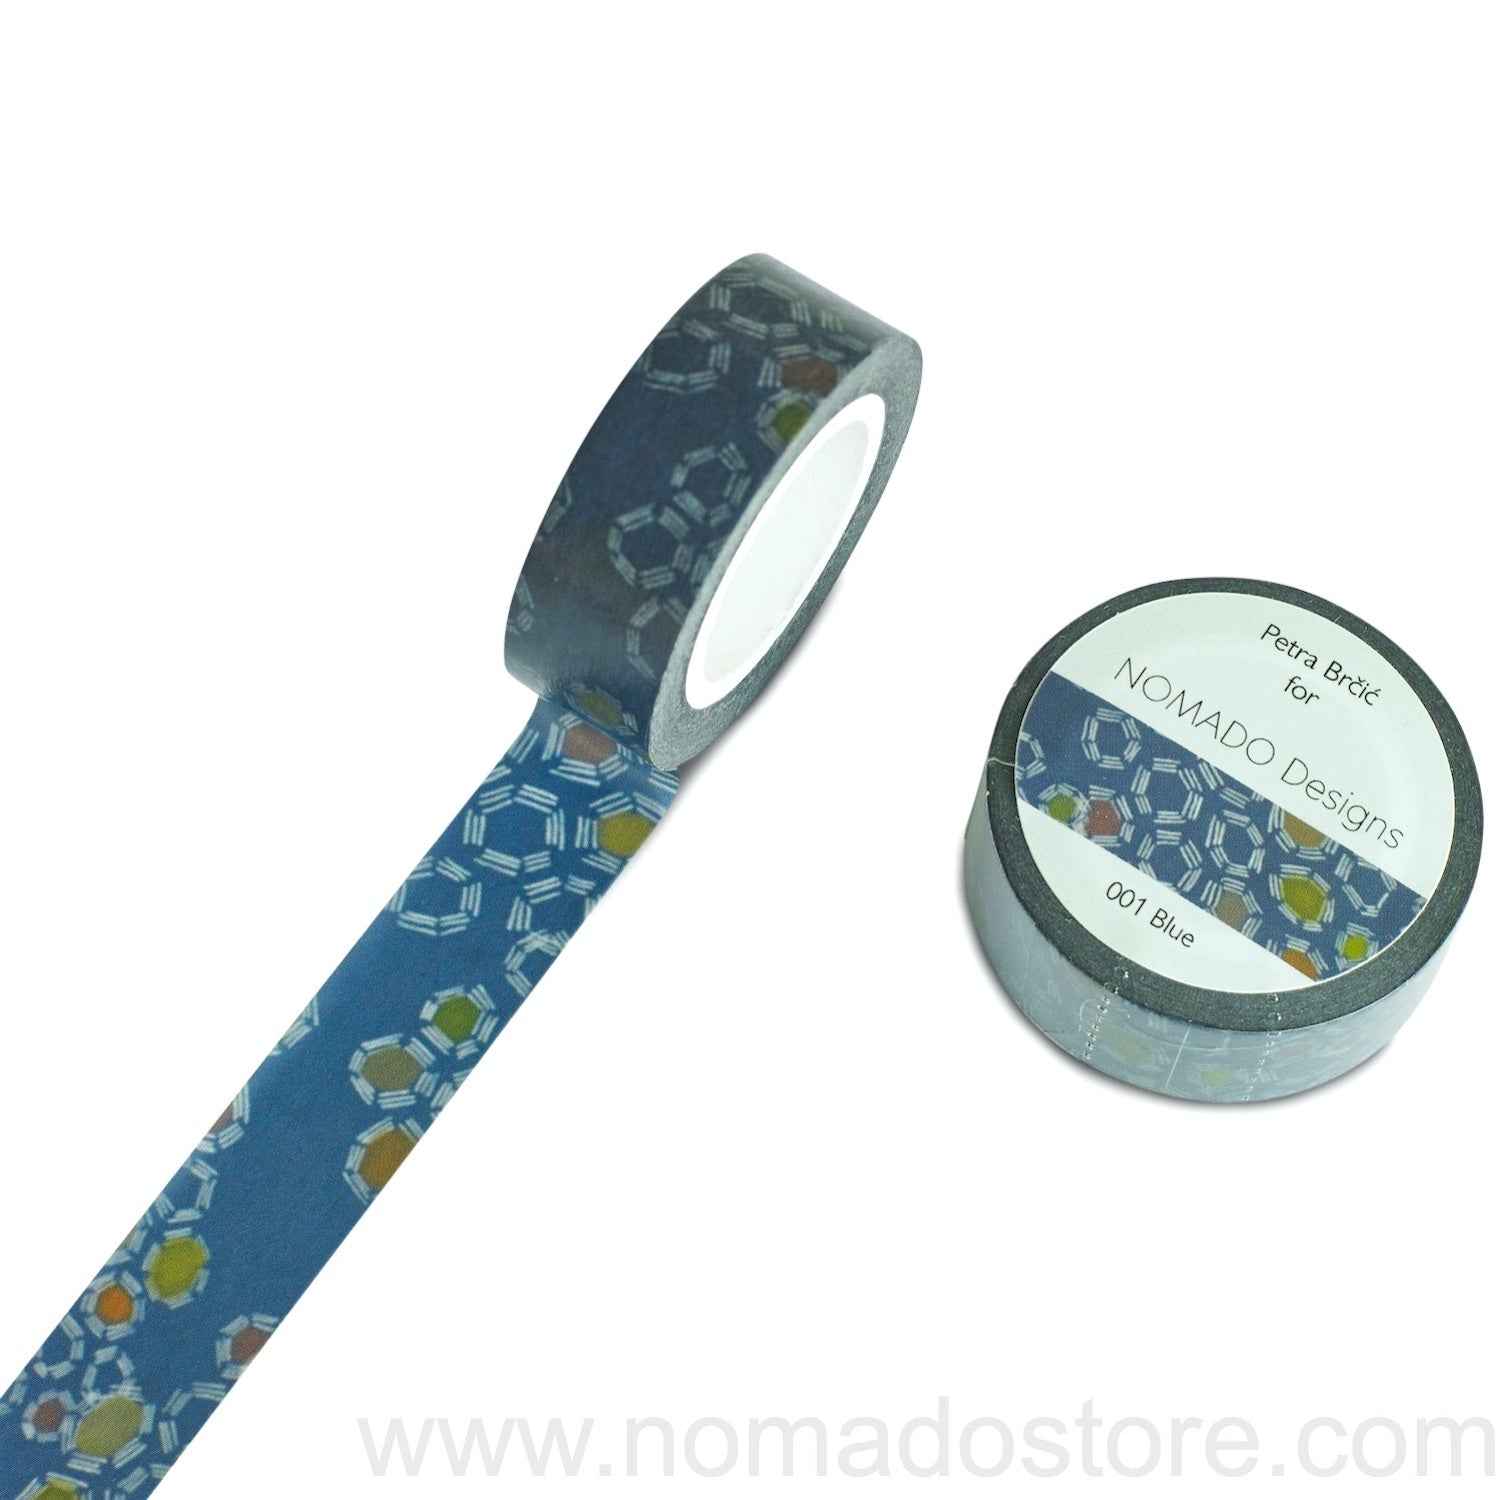 Petra Brčić for Nomado Designs 001 Blue Washi Tape